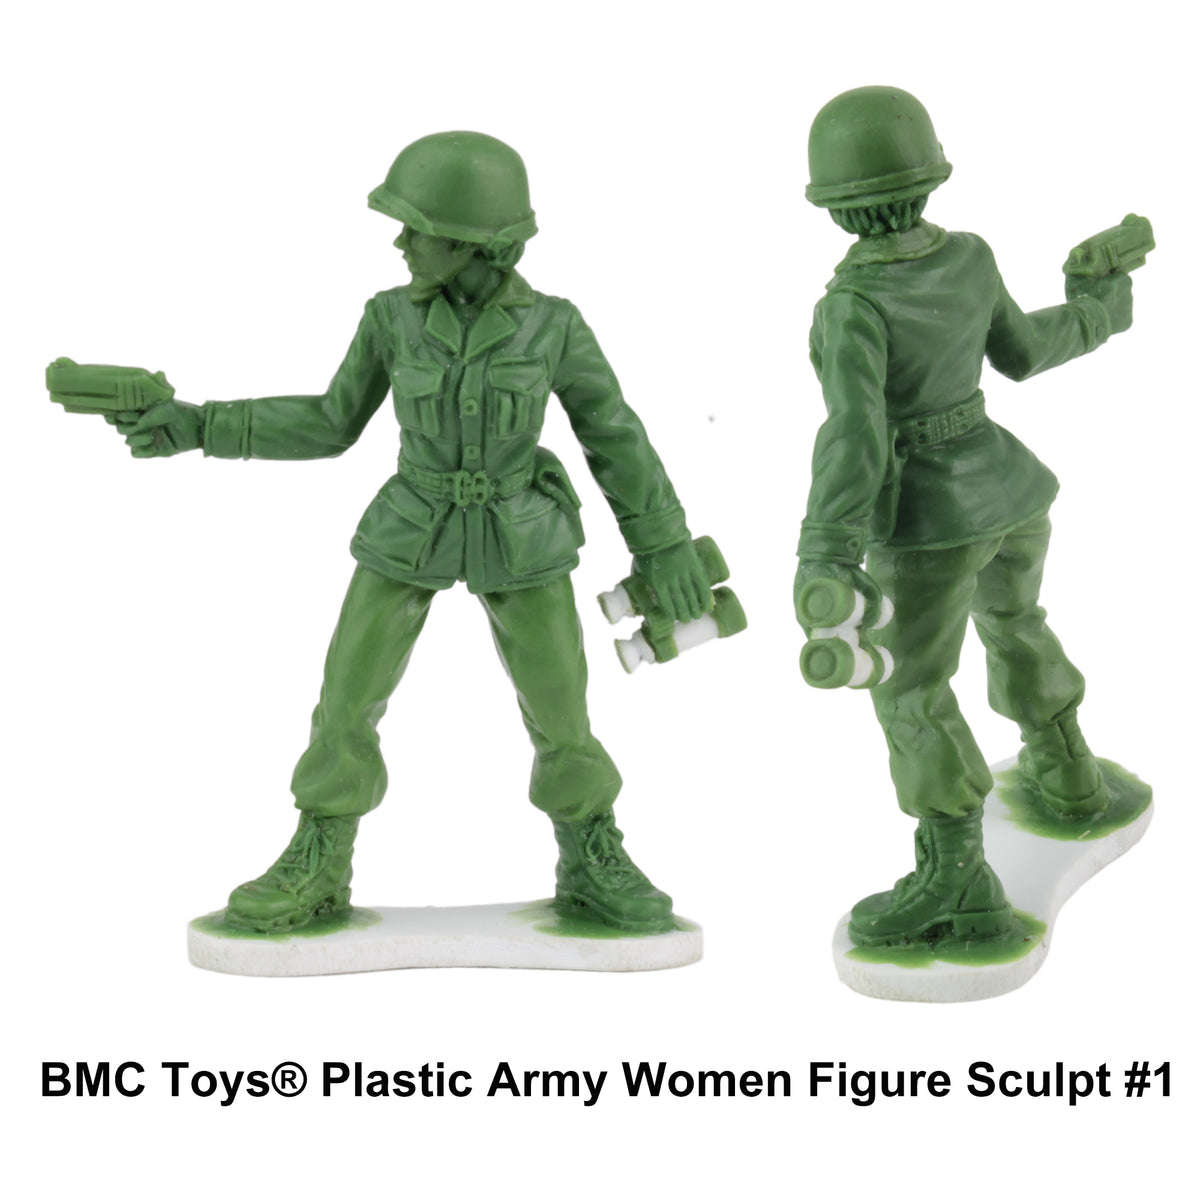 BMC Toys: Plastic Army Women Project: Update #3 – BMC Toy